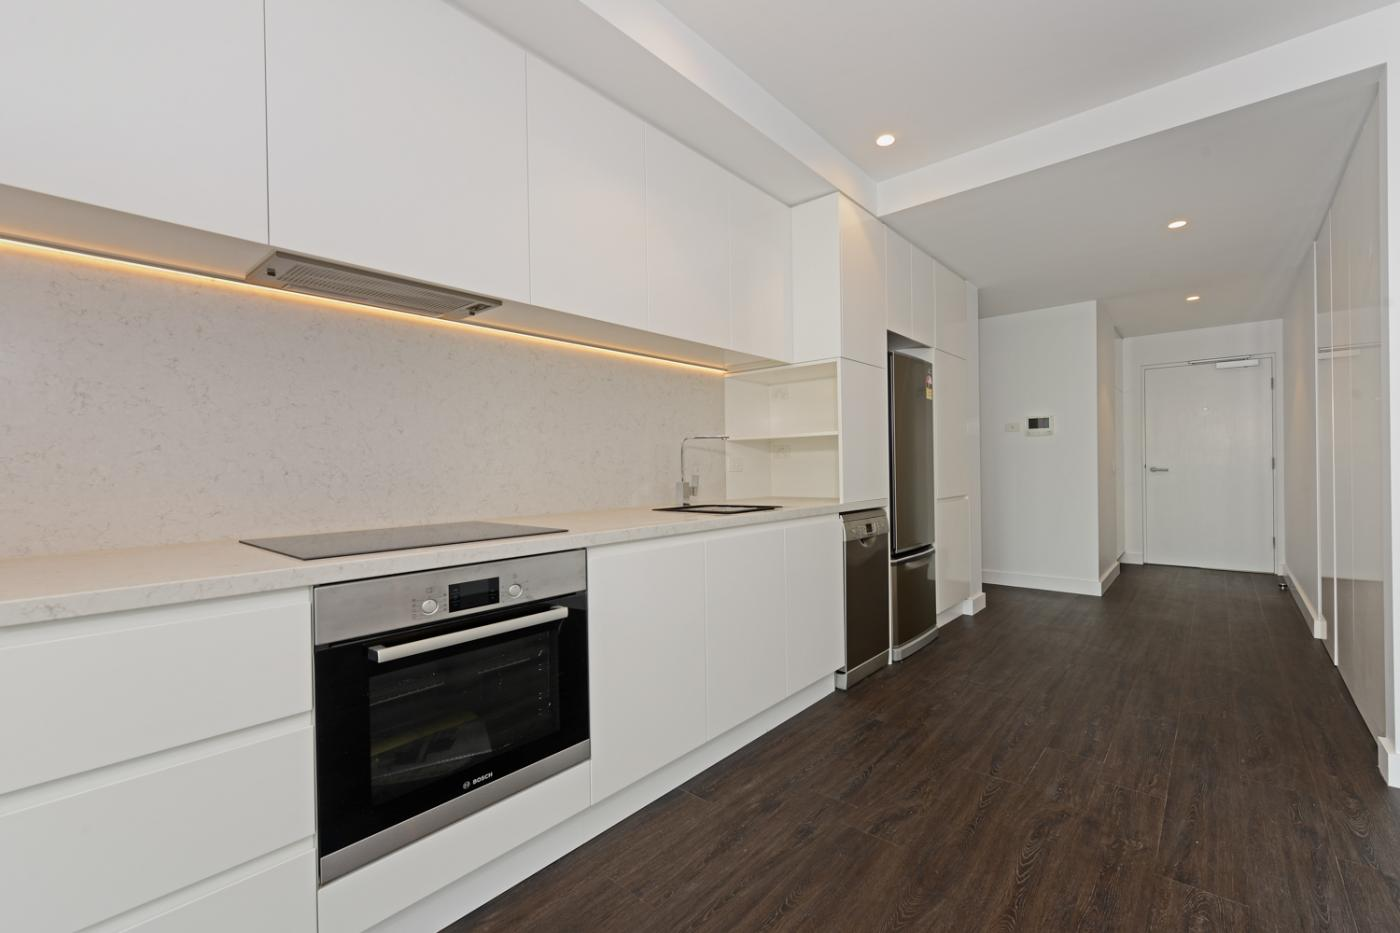 Brand New 1 Bedroom Apartment In First Class Location